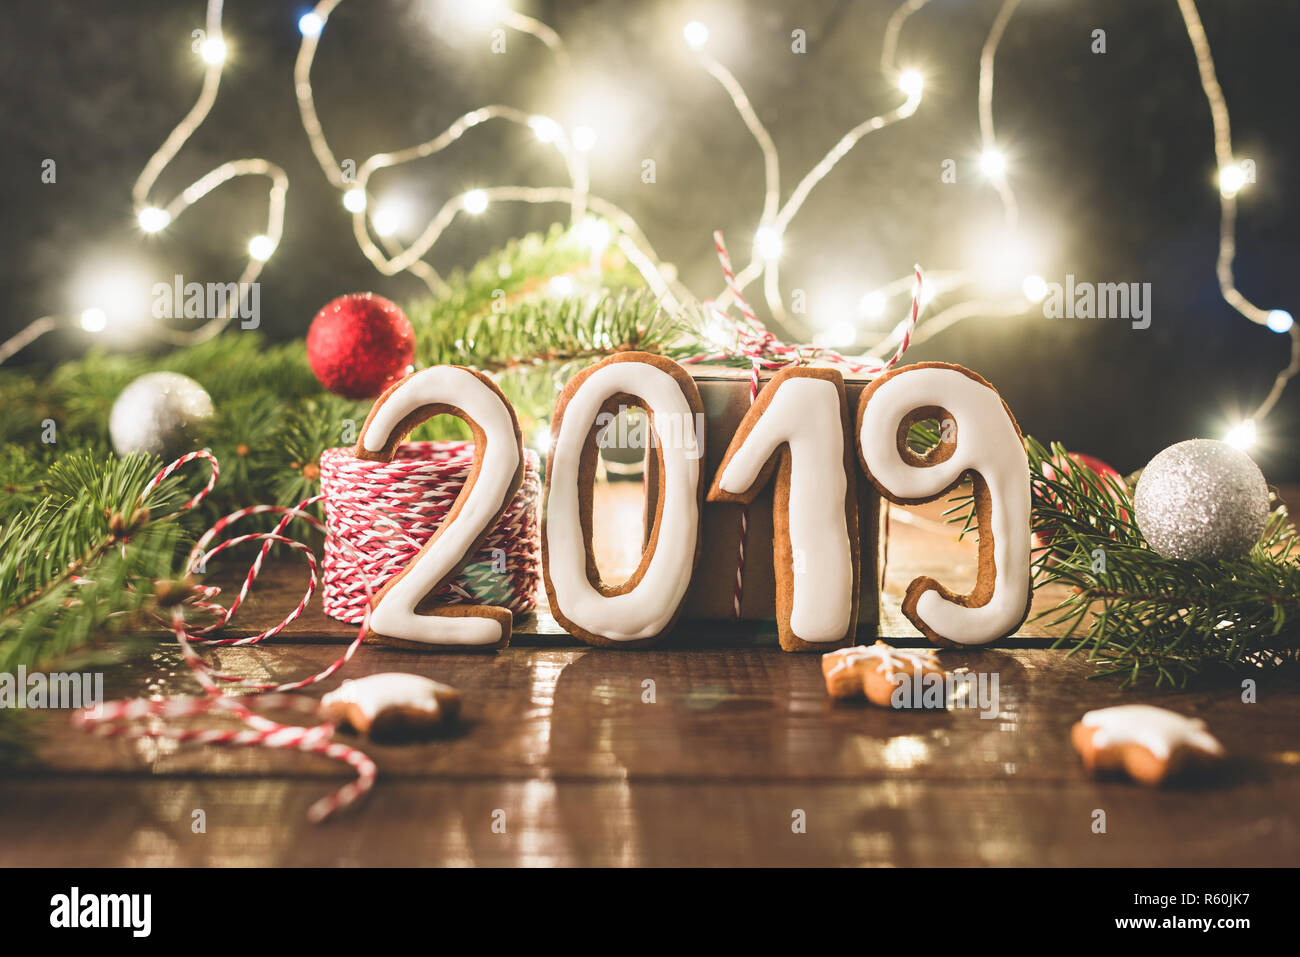 2019 greeting made of cookies and christmas lights. Christmas or New Year banner, decorations, greeting card - Stock Image